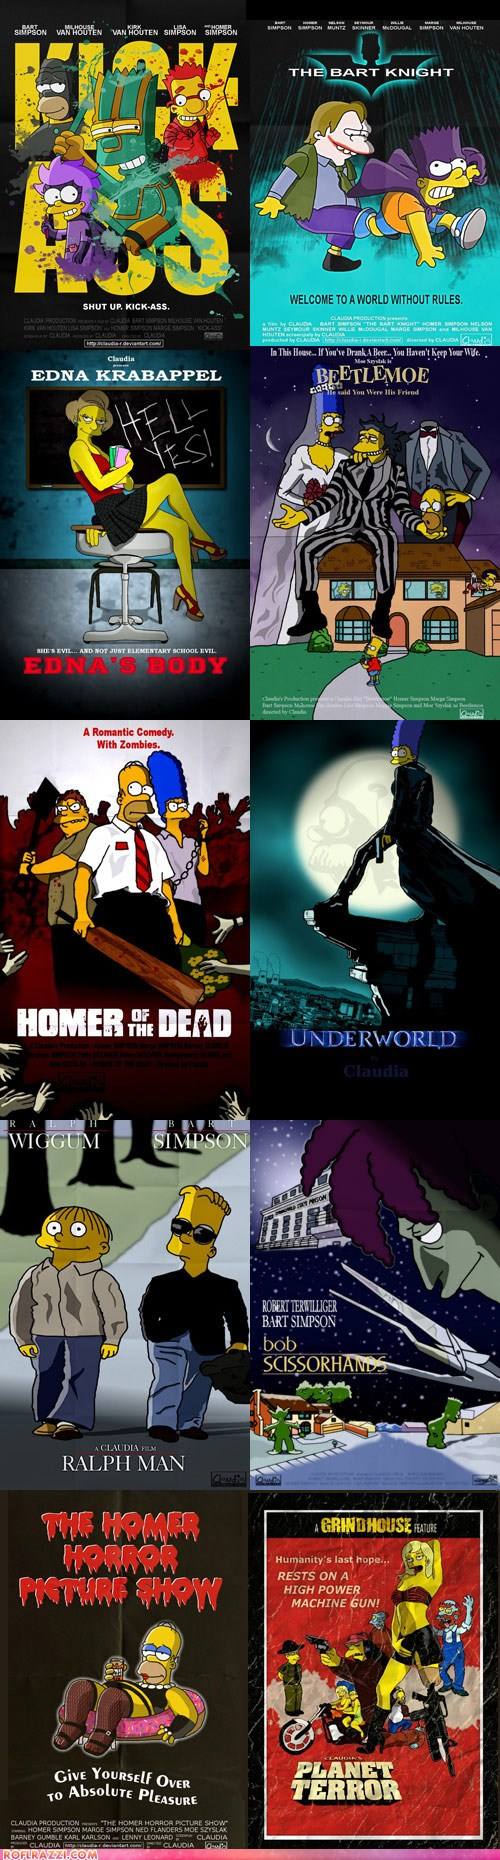 The Simpsons Movie Poster Parodies Pop Culture Funny Celebrity Pictures